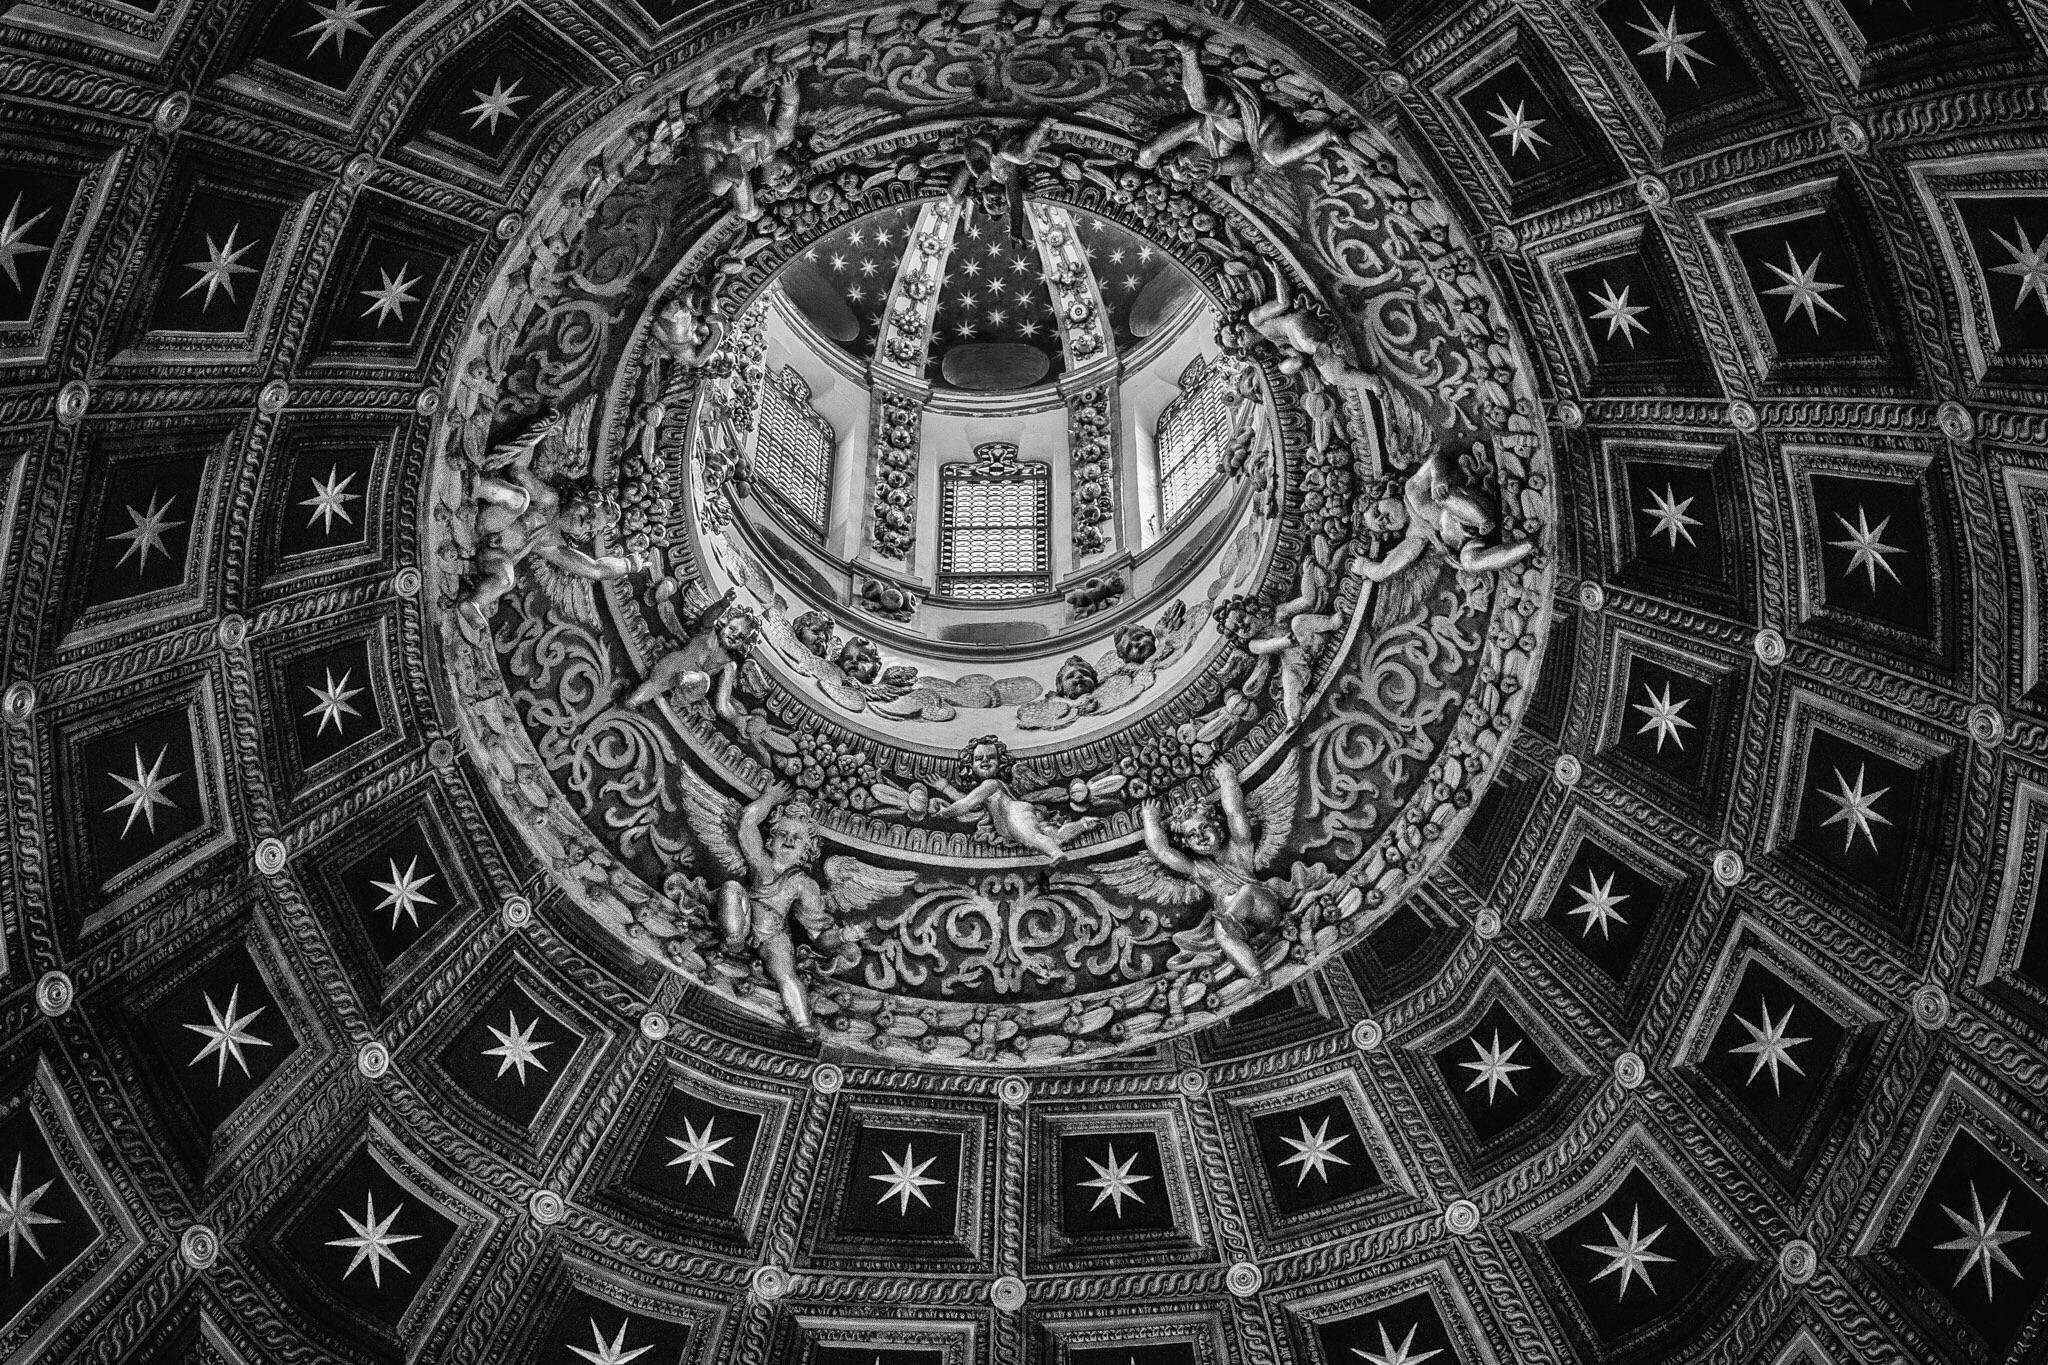 Picture of the ceiling of the Duomo in Siena